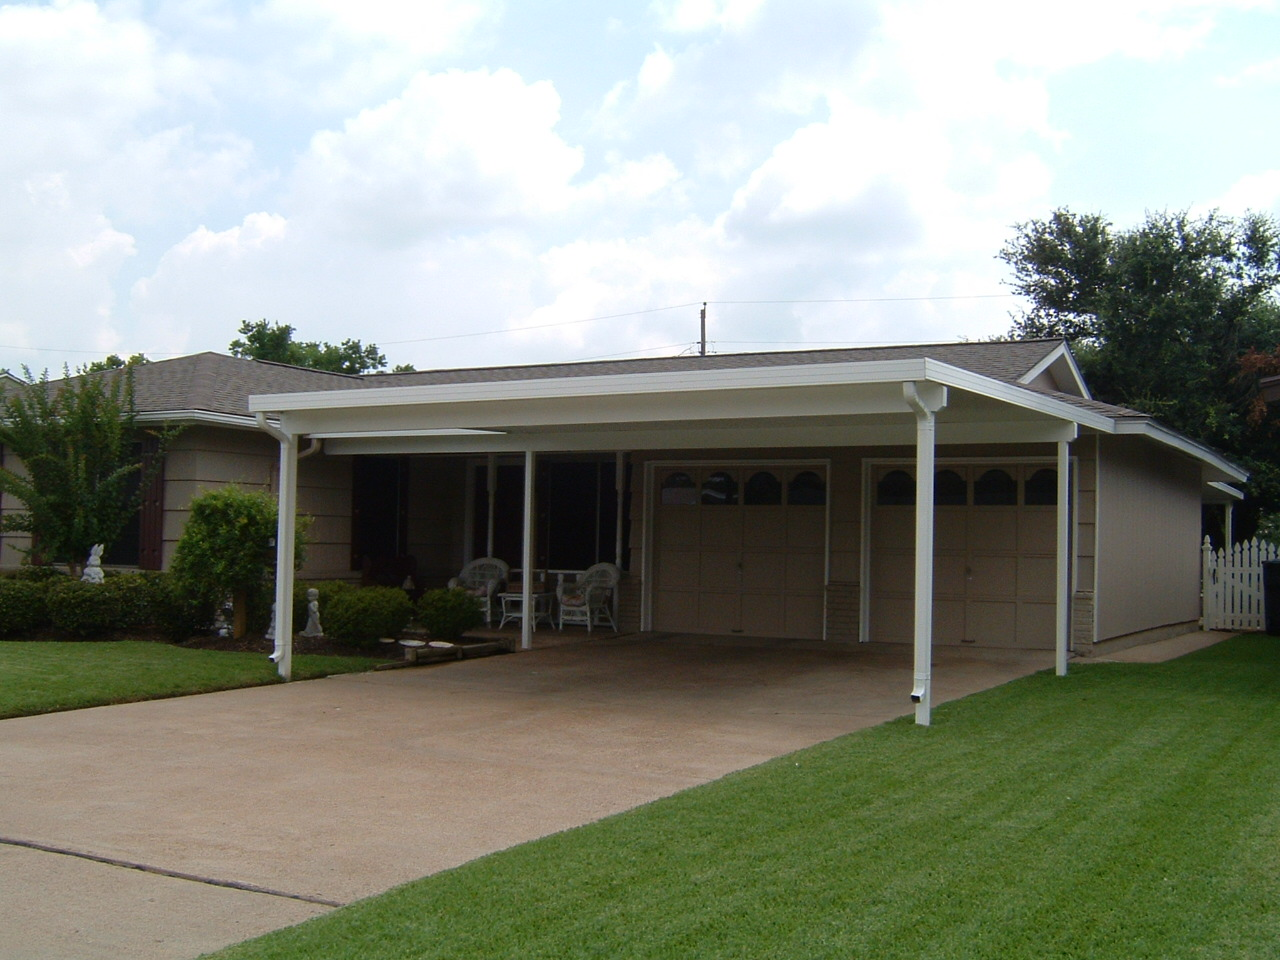 carports of texas patios rooms and patio covers. Black Bedroom Furniture Sets. Home Design Ideas